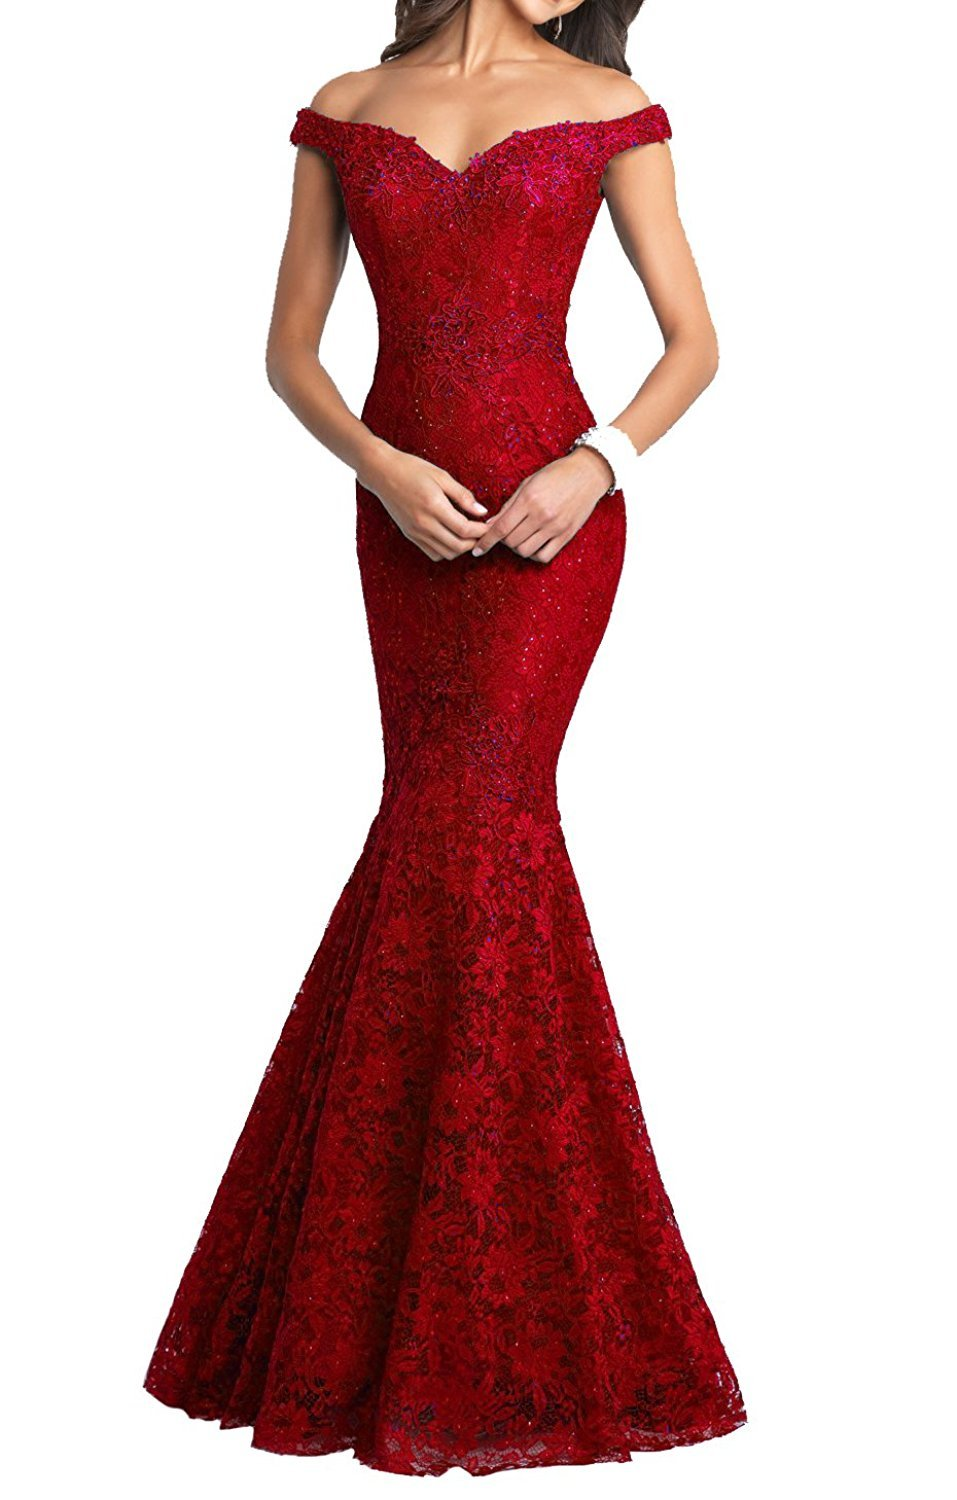 Lily Wedding Women Lace Beaded Mermaid Prom Evening Dress 2018 Long V-Neck Wedding Formal Gowns GD31 Size 14 Red